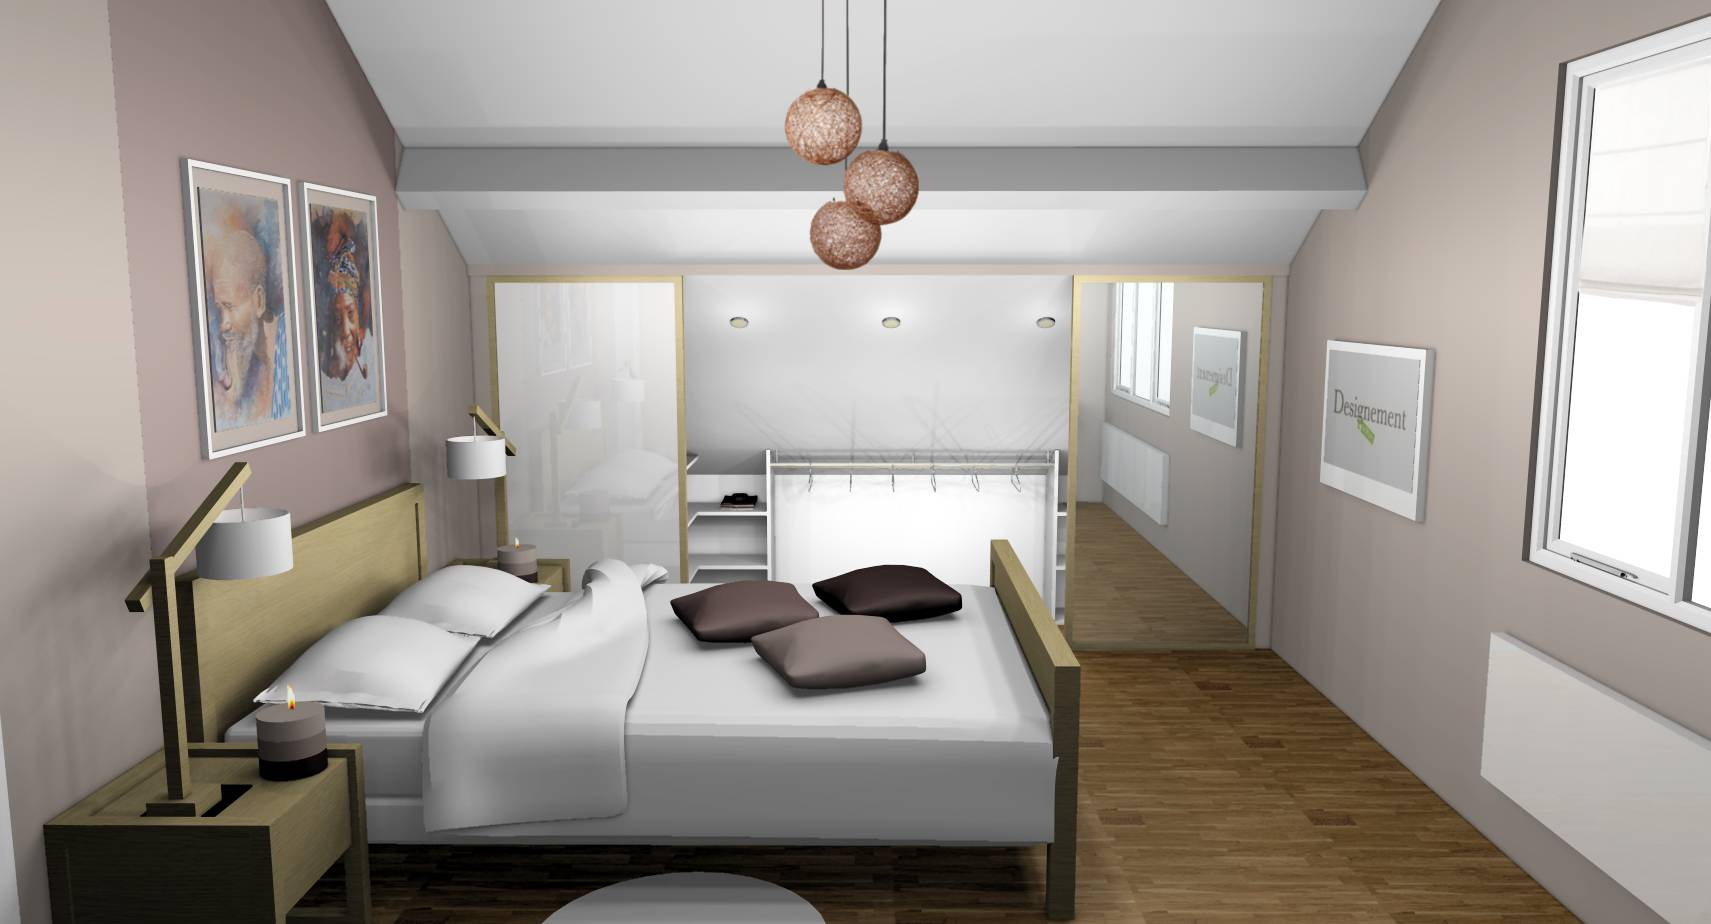 Chambre avec dressing – lombards